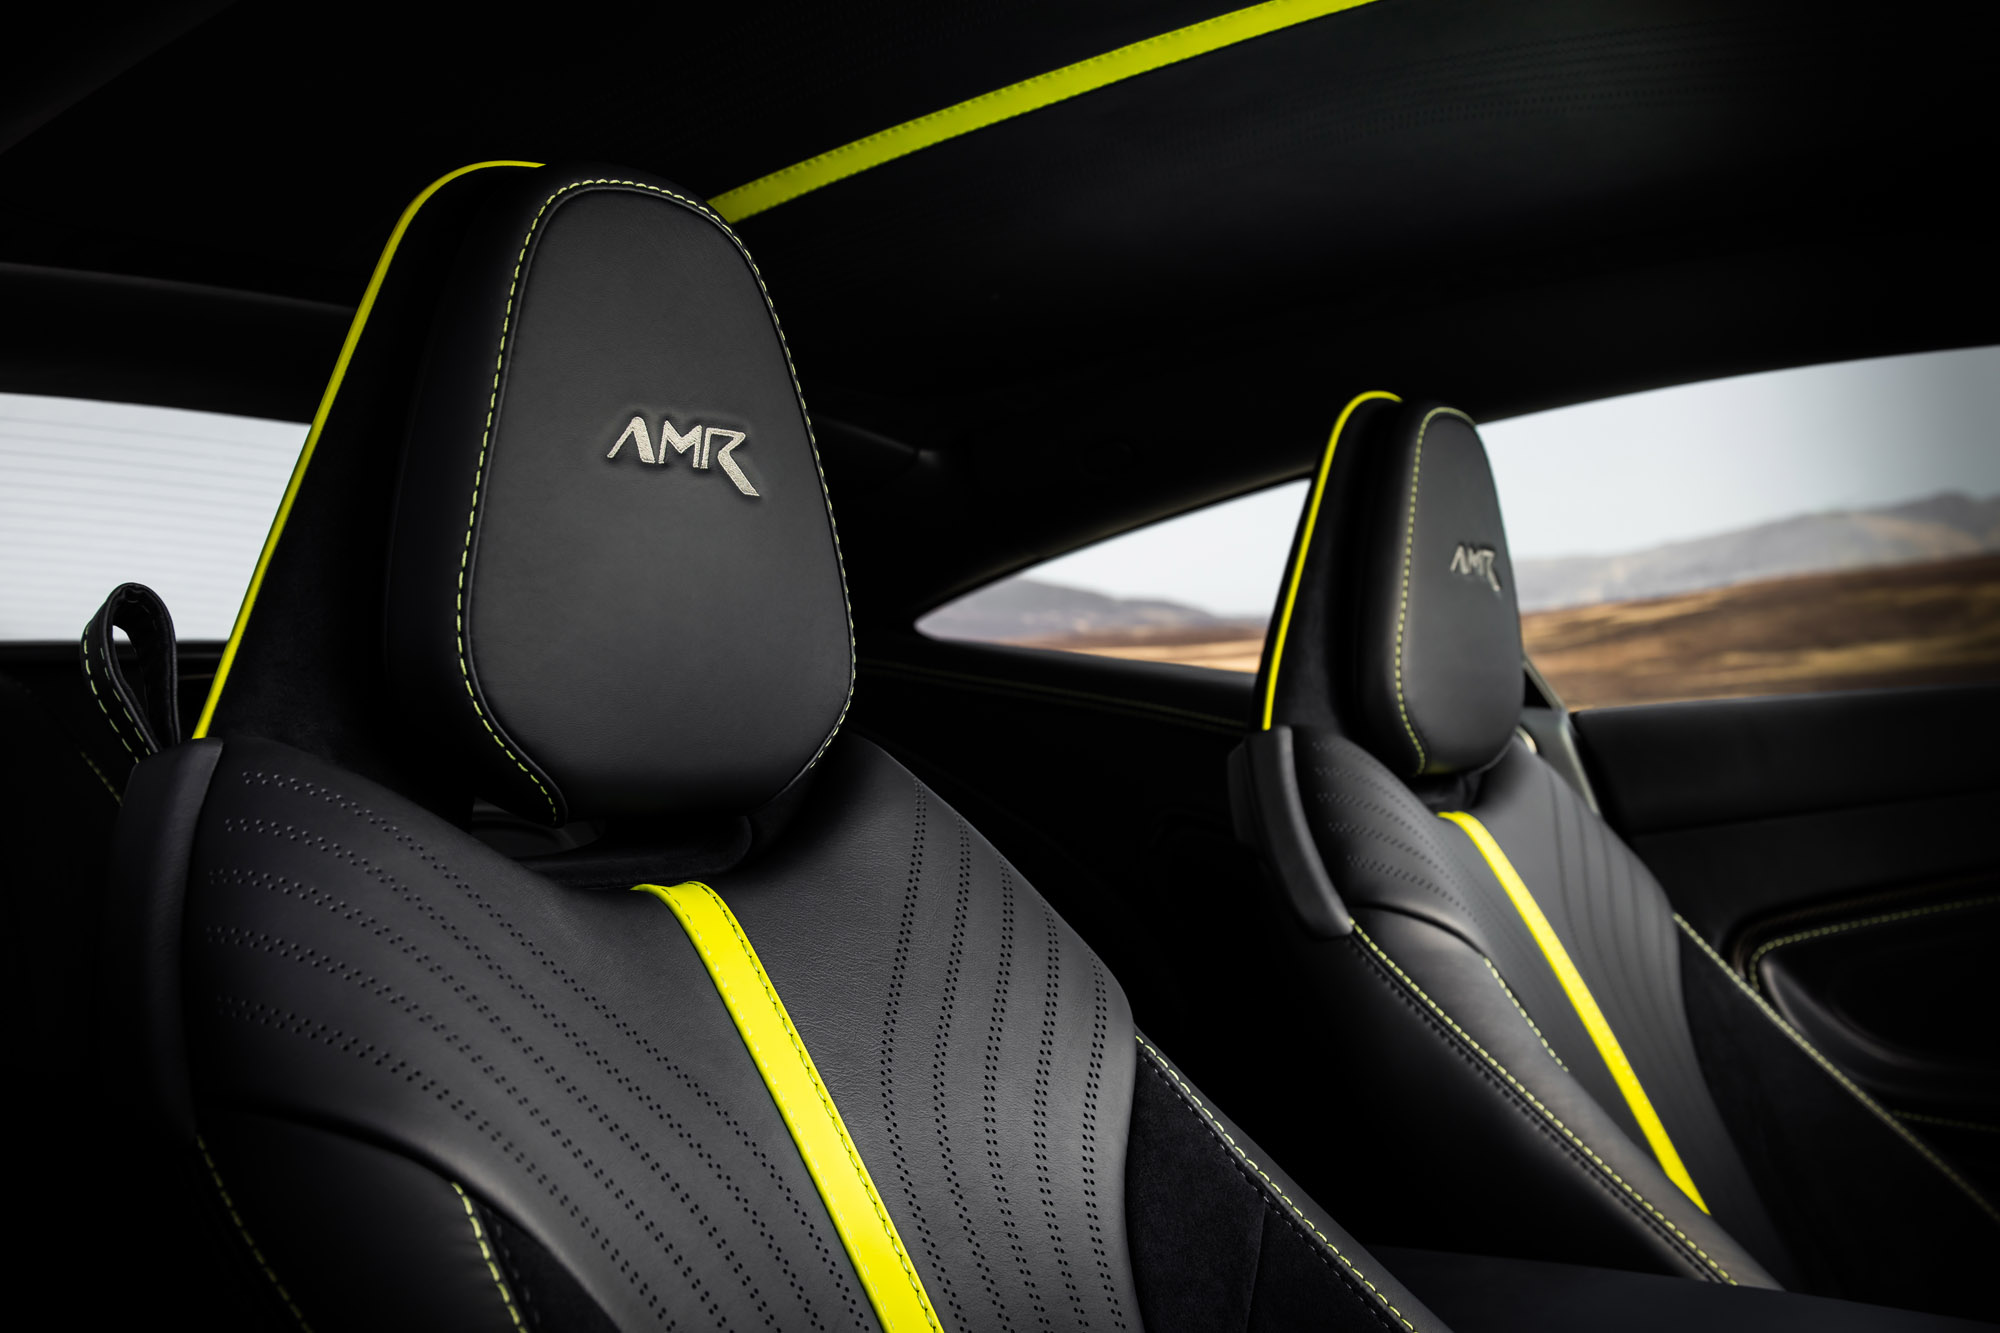 Aston Martin Db11 Amr The Modern Classic Dressed To Thrill